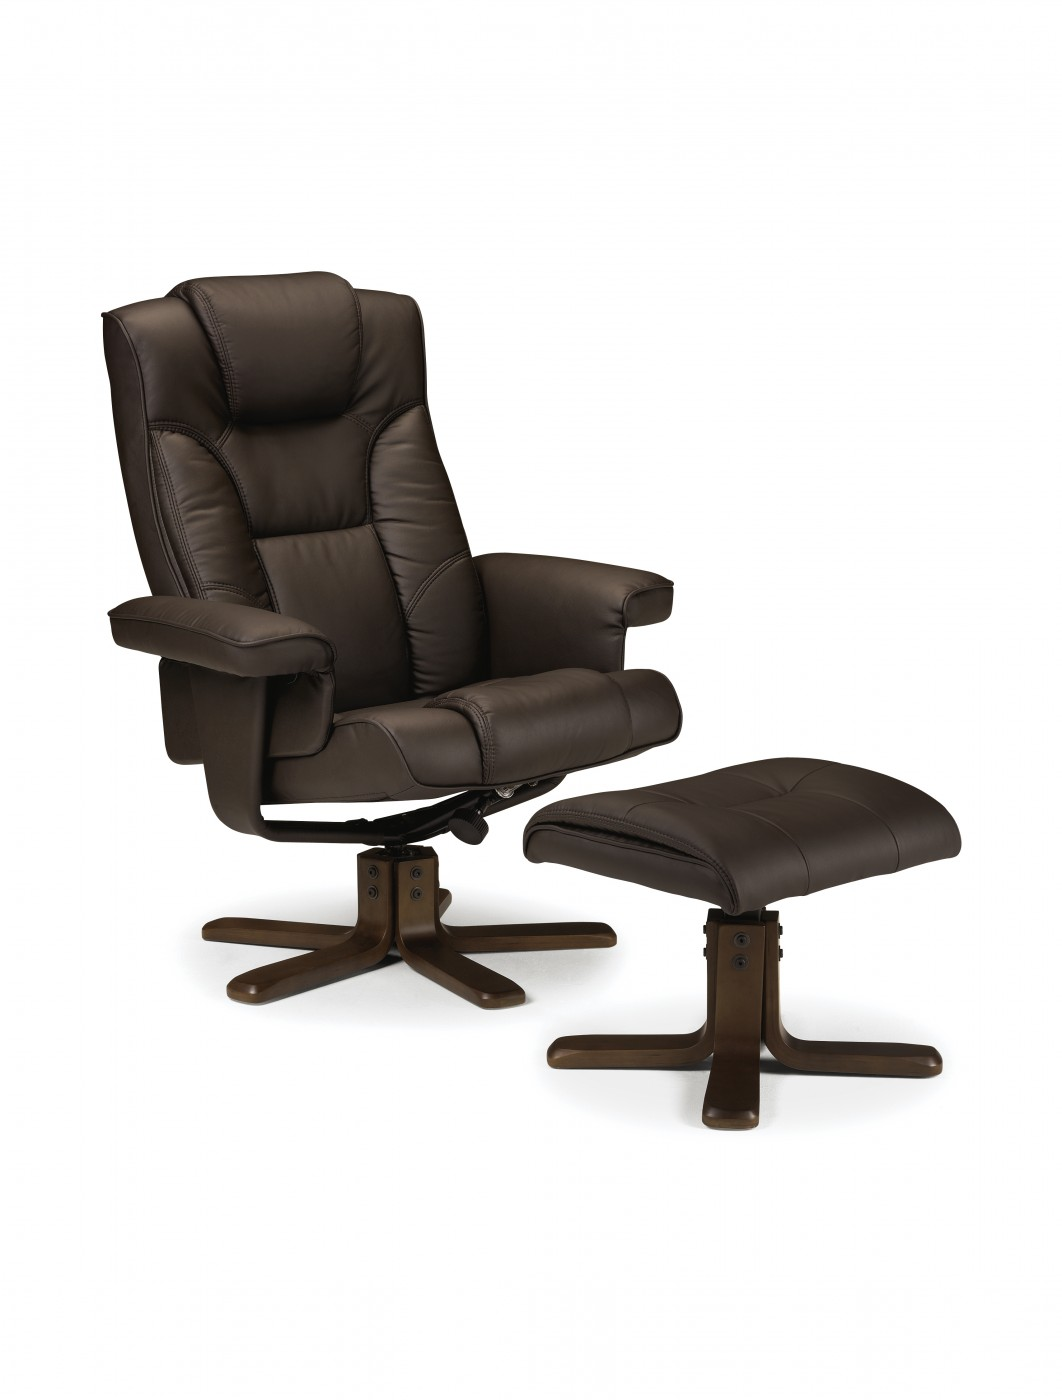 office recliners. Malmo Swivel Recliner Chair - Enlarged View Office Recliners